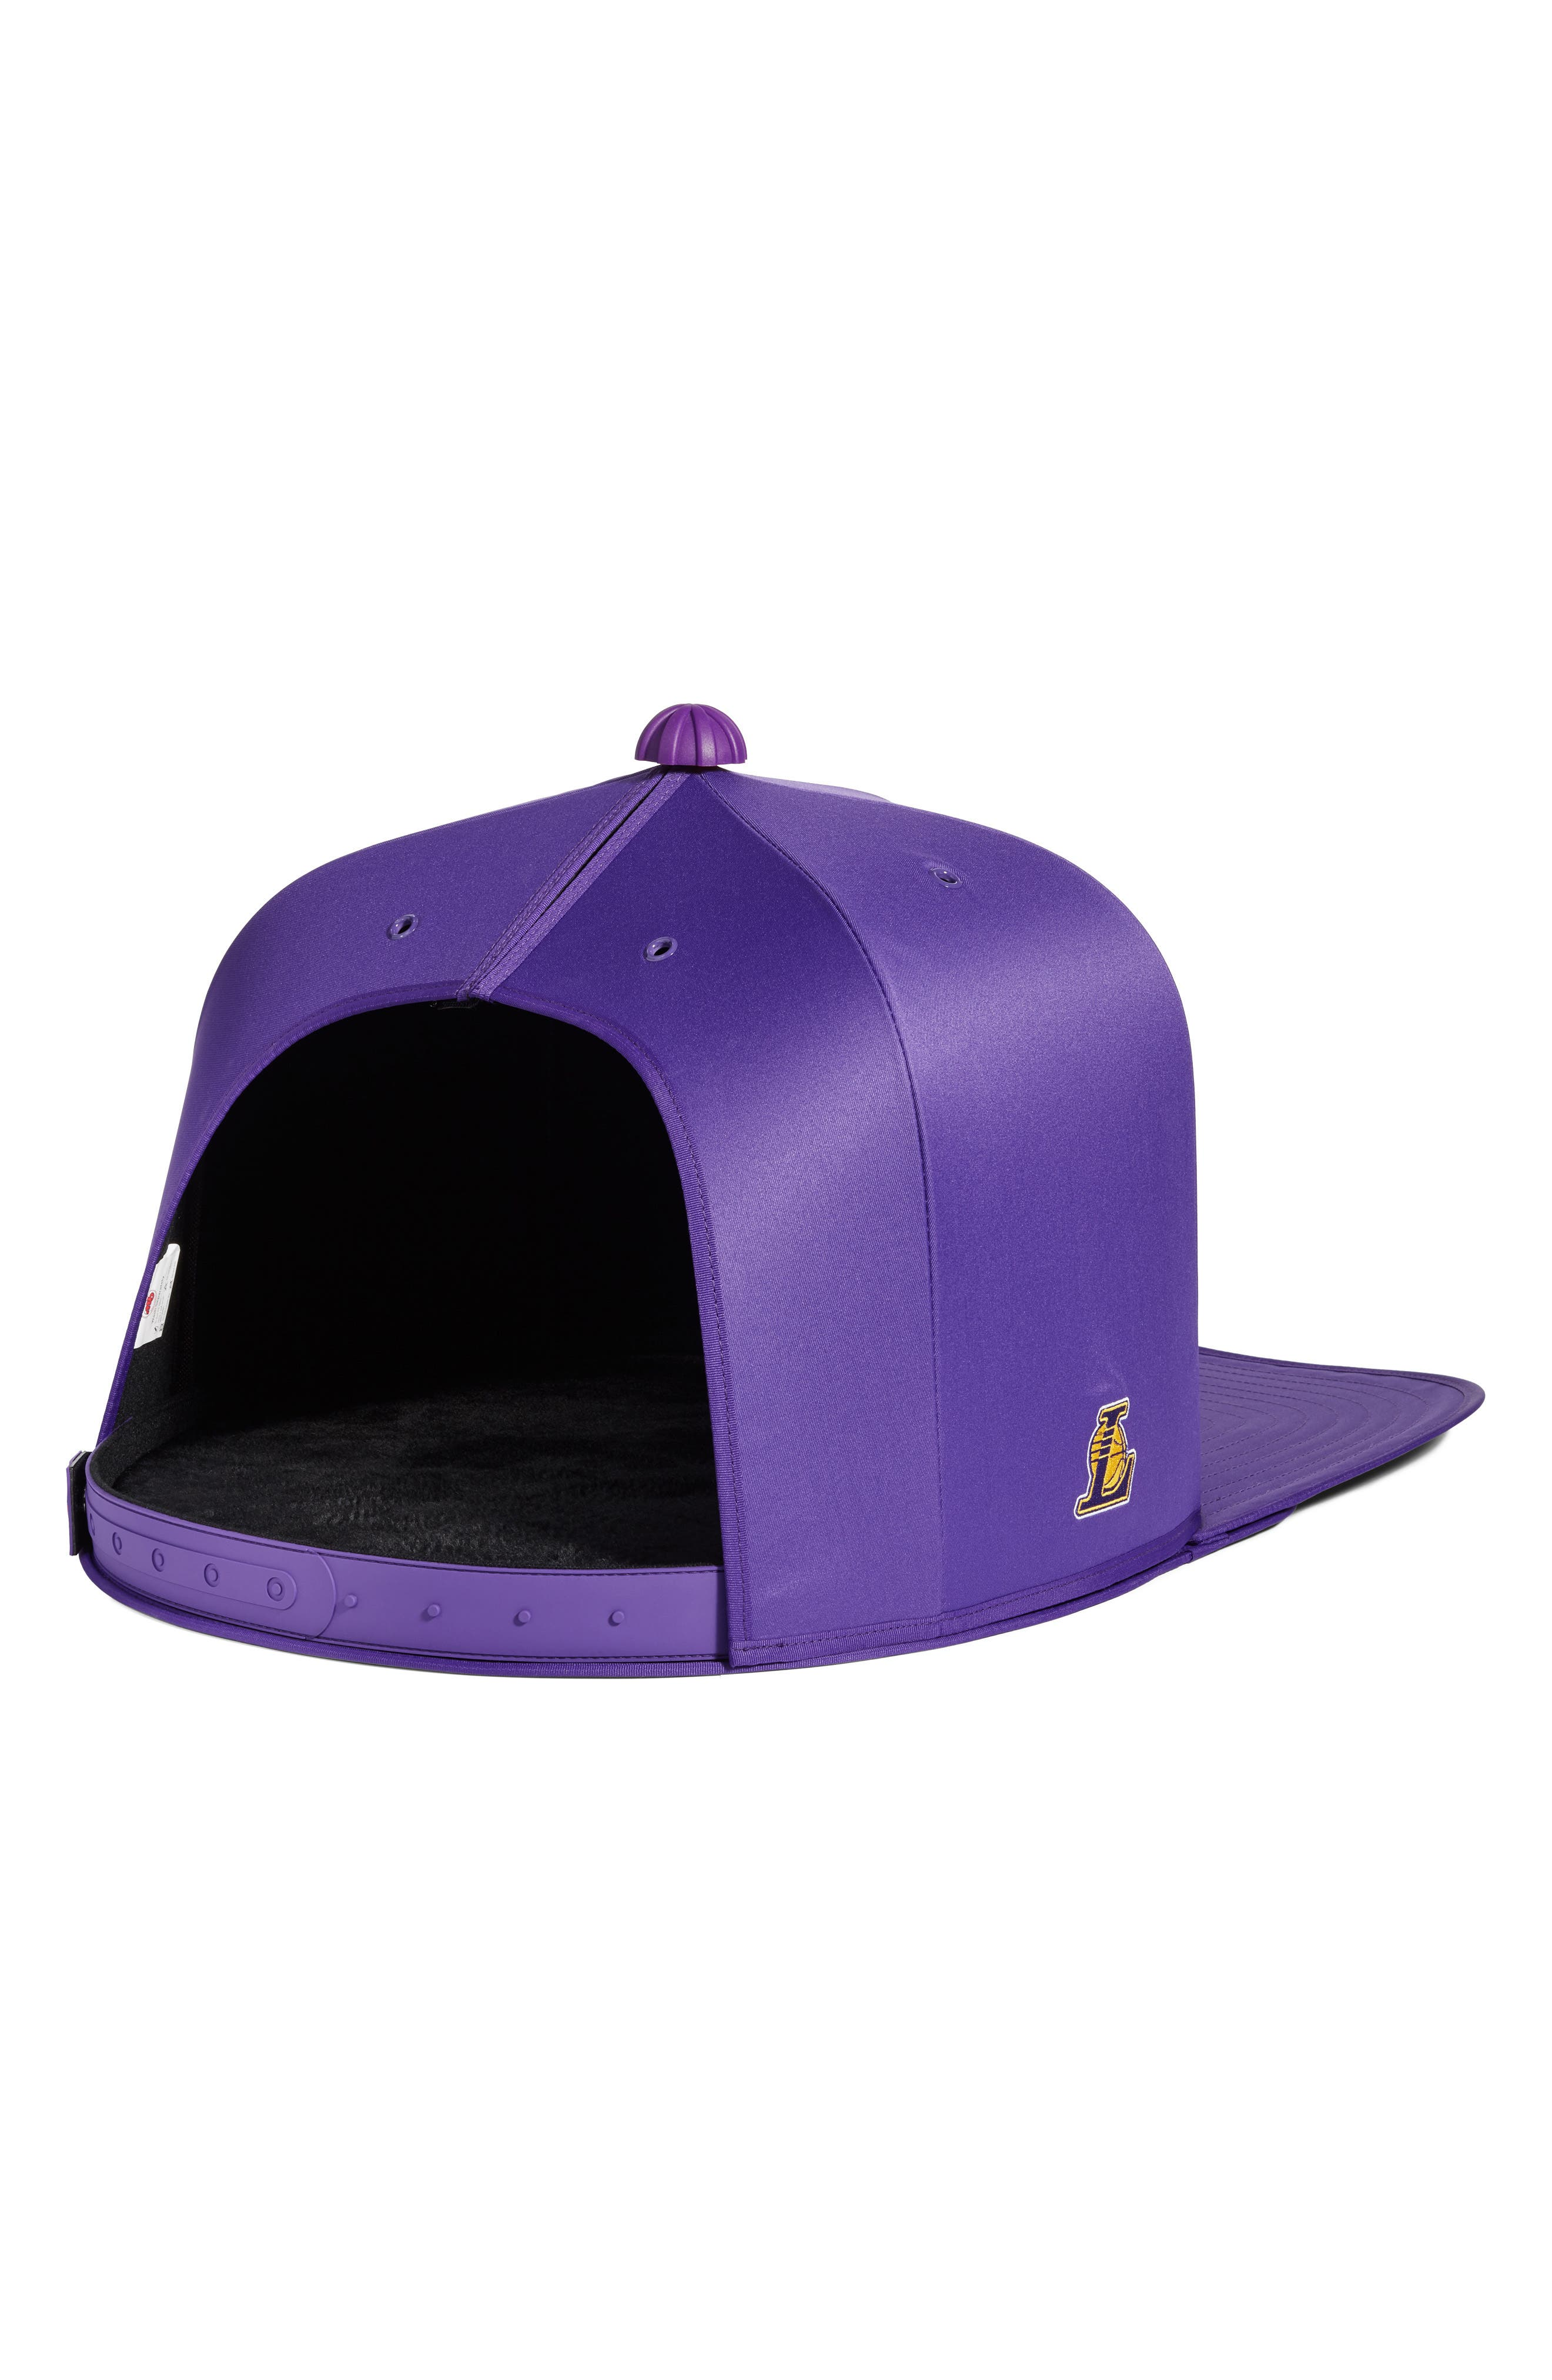 Los Angeles Lakers Pet Bed,                             Alternate thumbnail 2, color,                             500